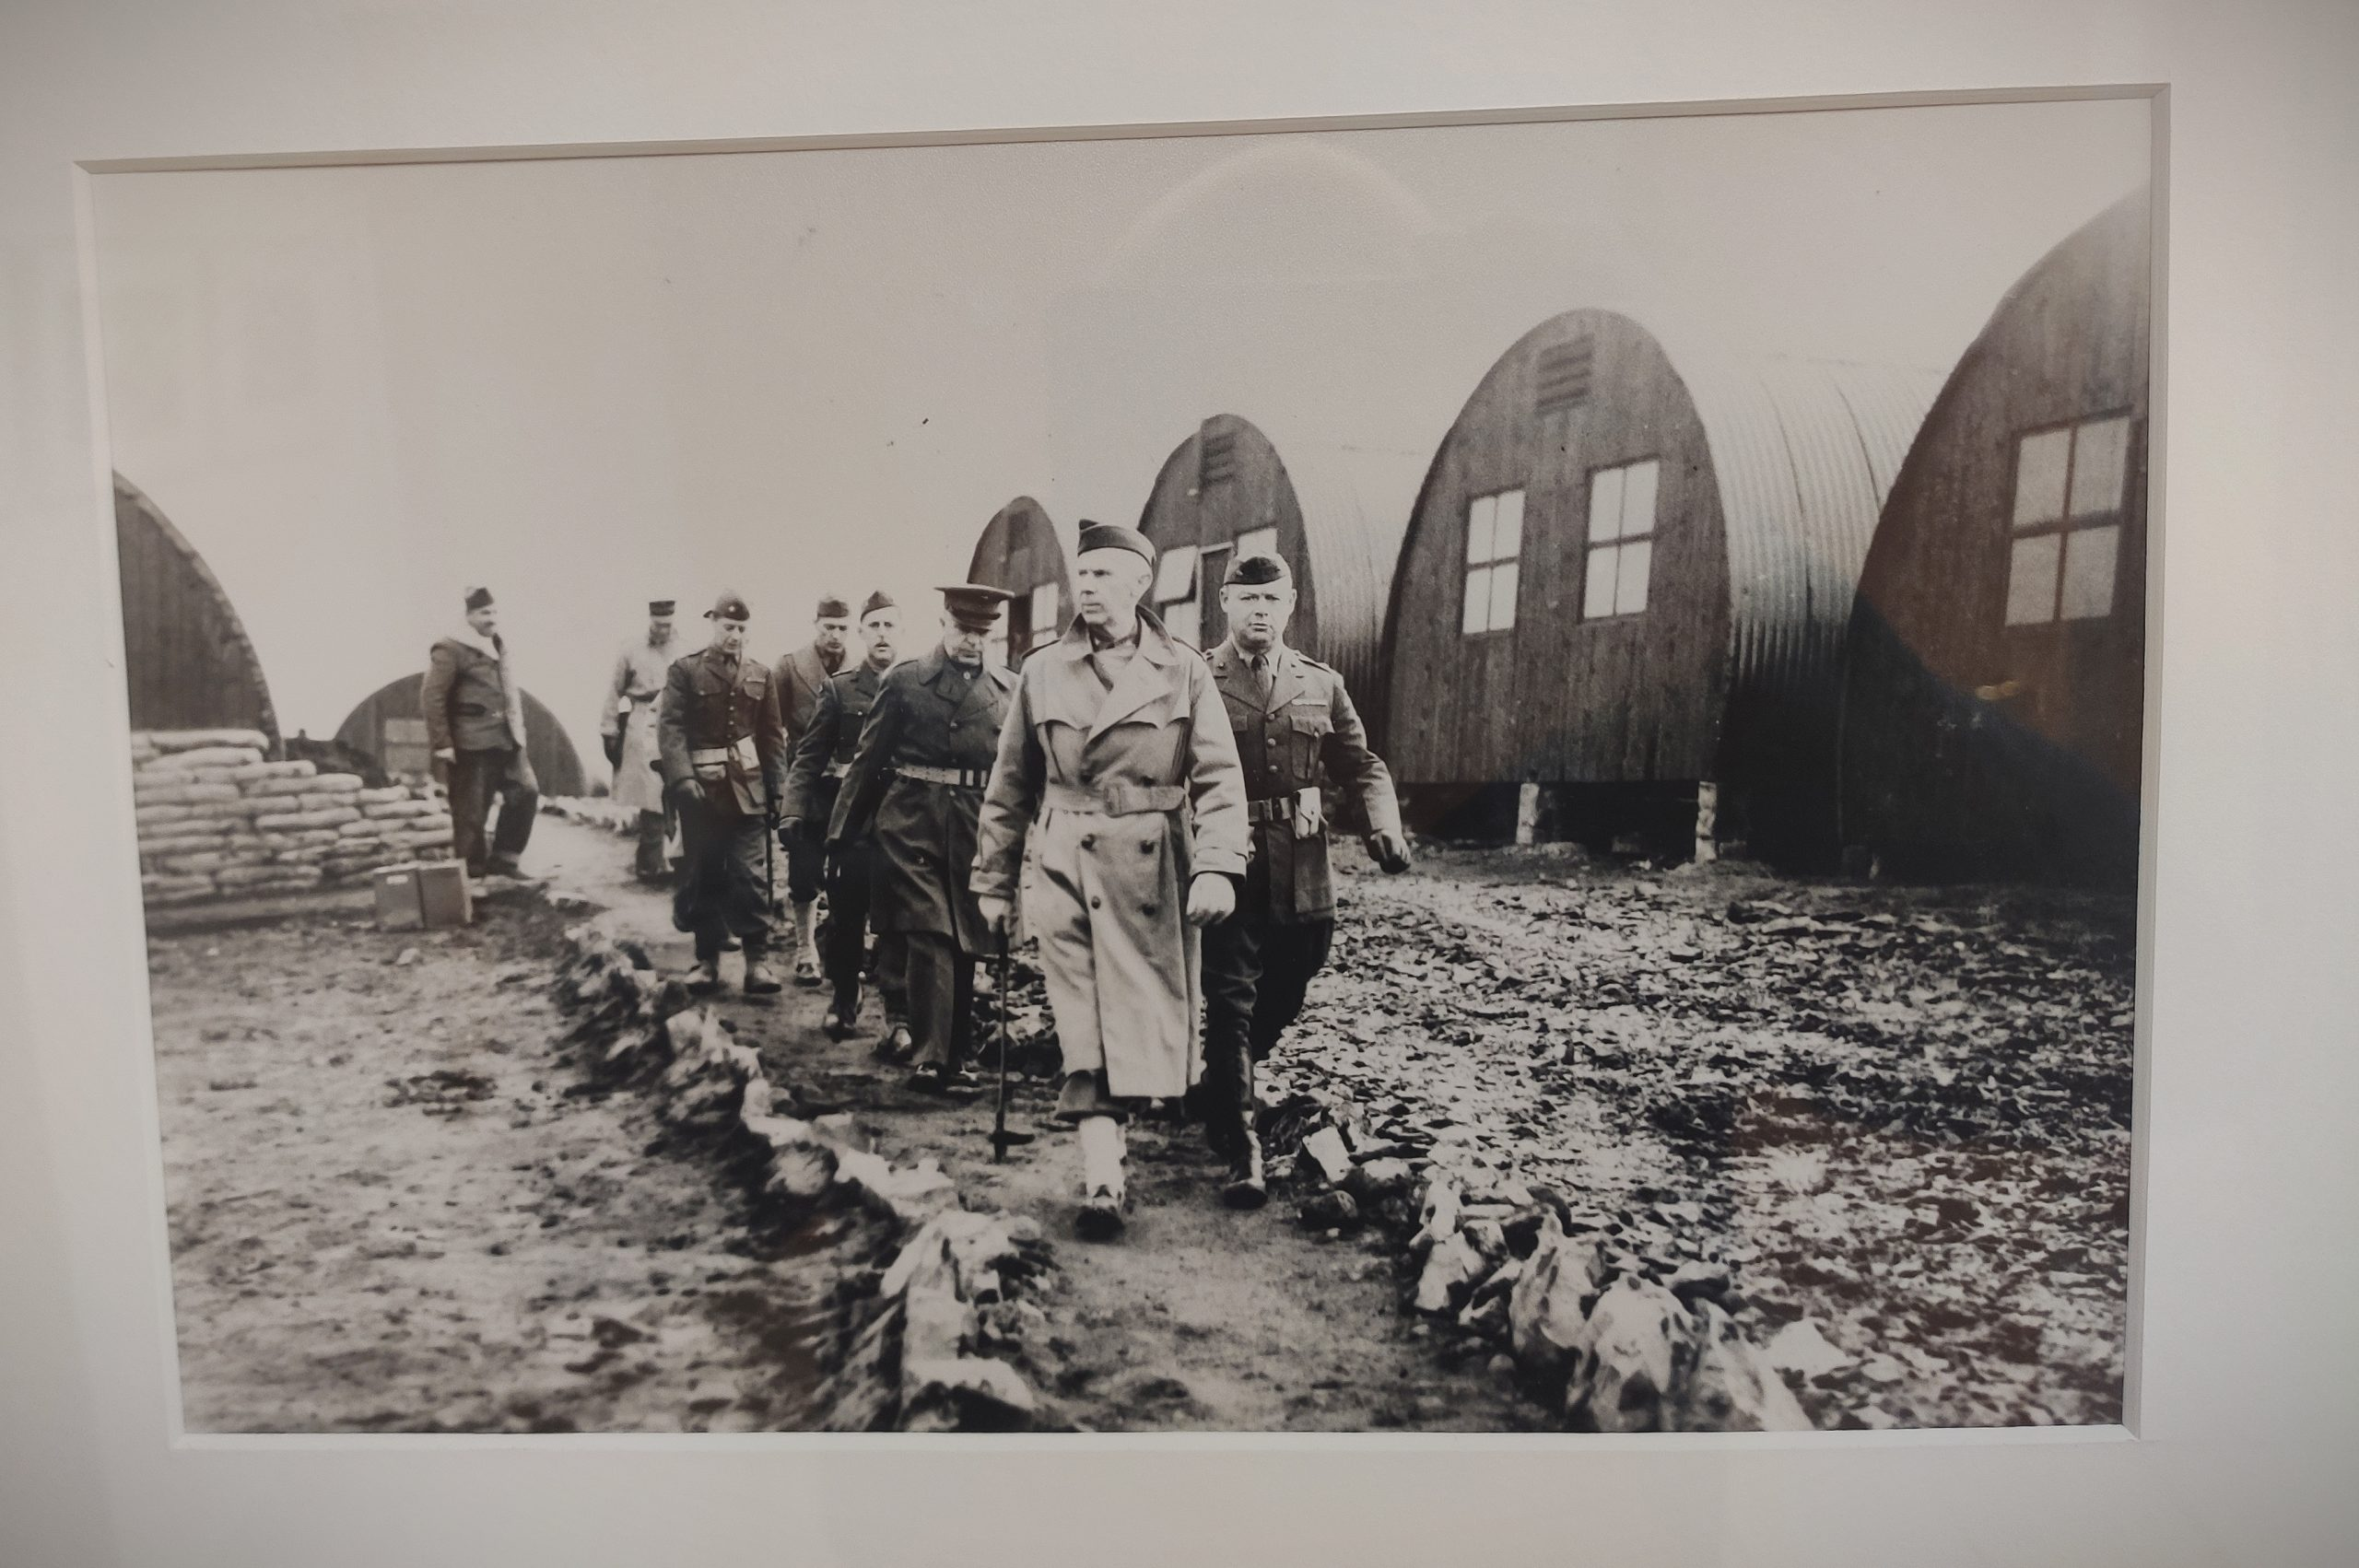 soldiers in icelandic soil